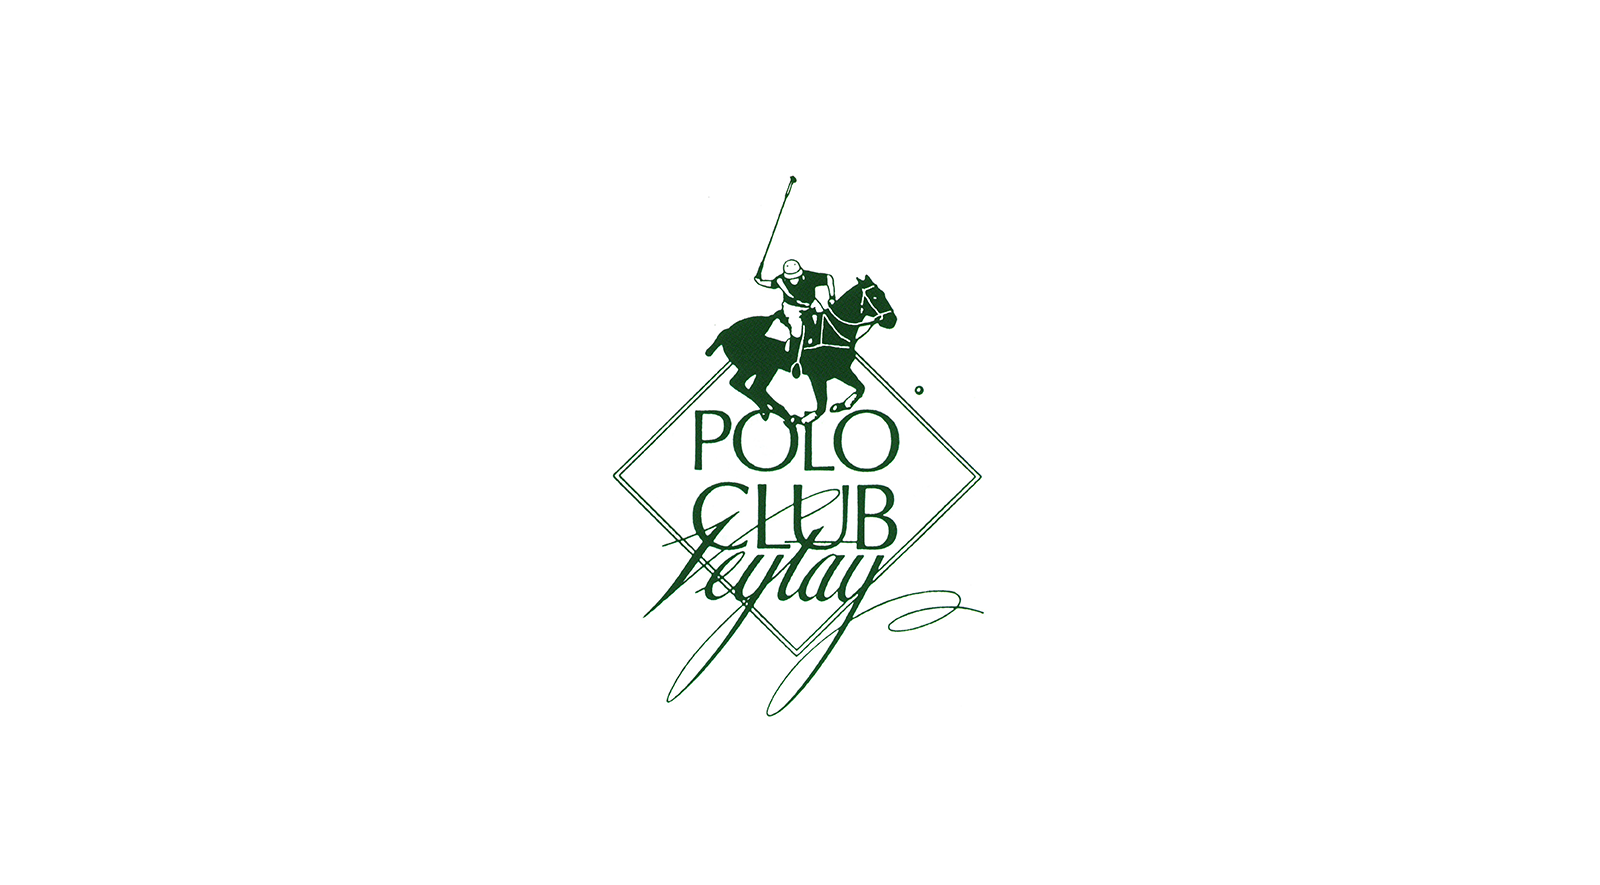 Polo Club de Veytay